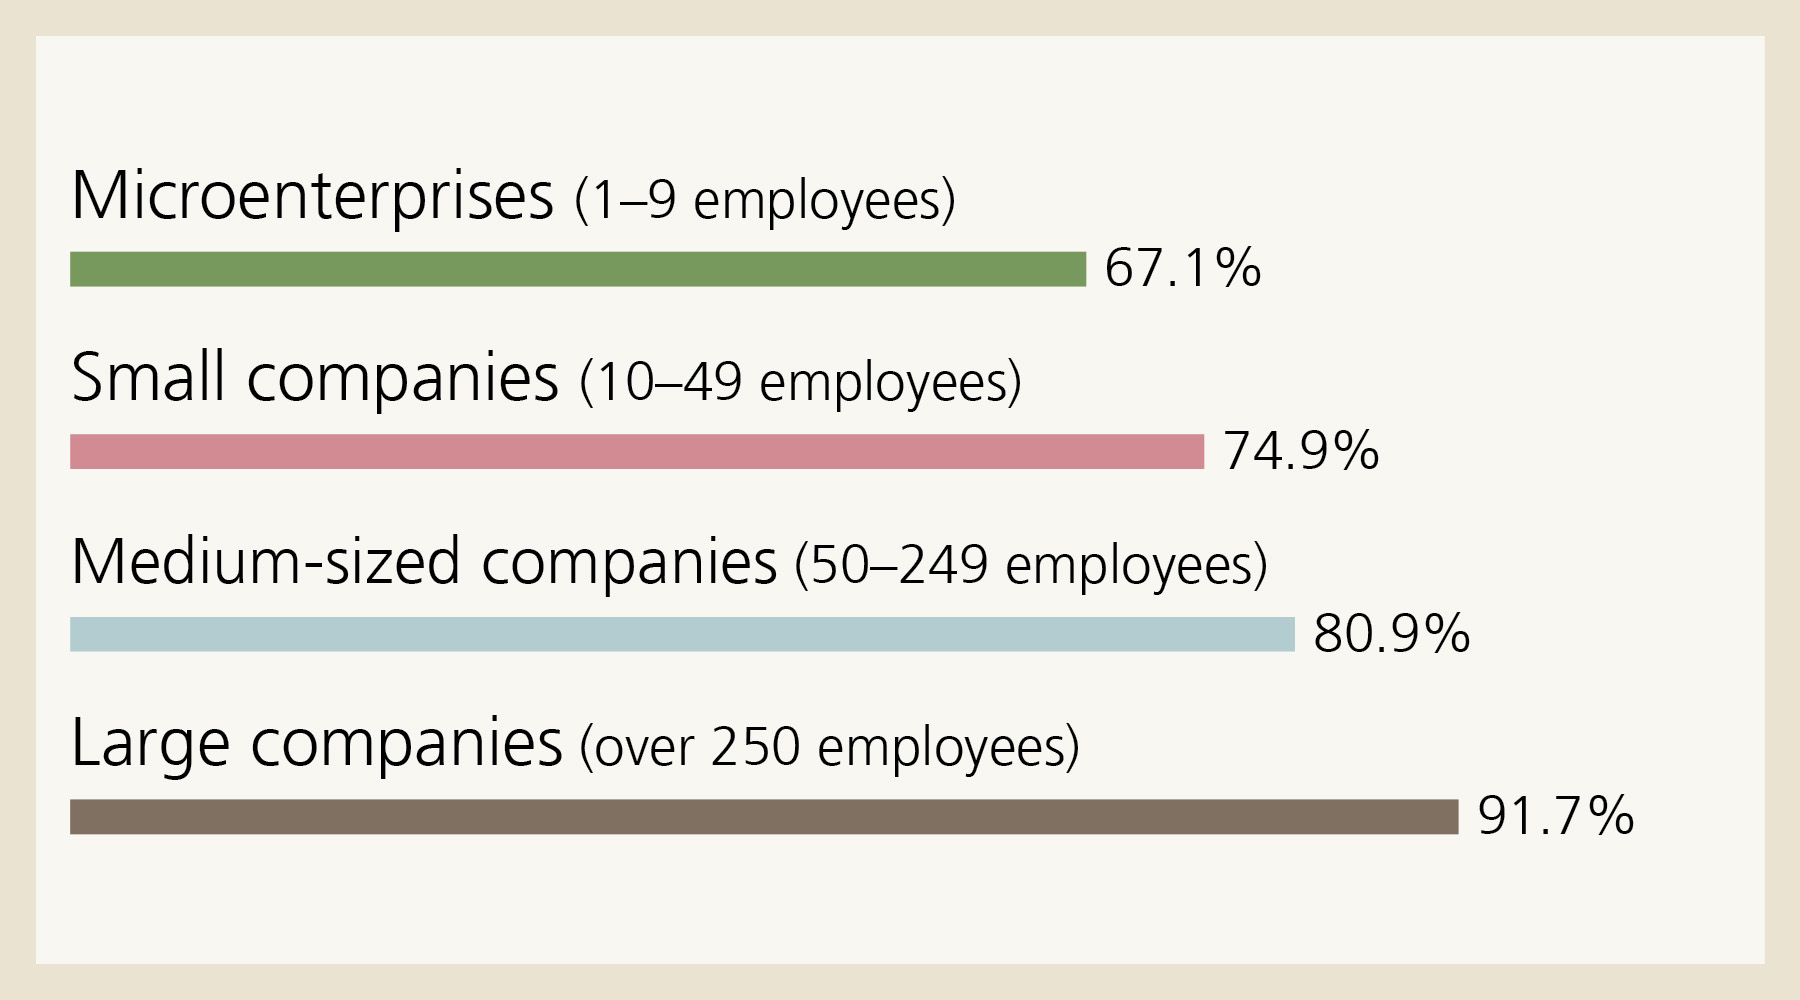 Relevance: 67.1% of microenterprises (1-9 employees) classify their digital transformation as a priority. In the case of large companies (over 250 employees), it is 91.7%.